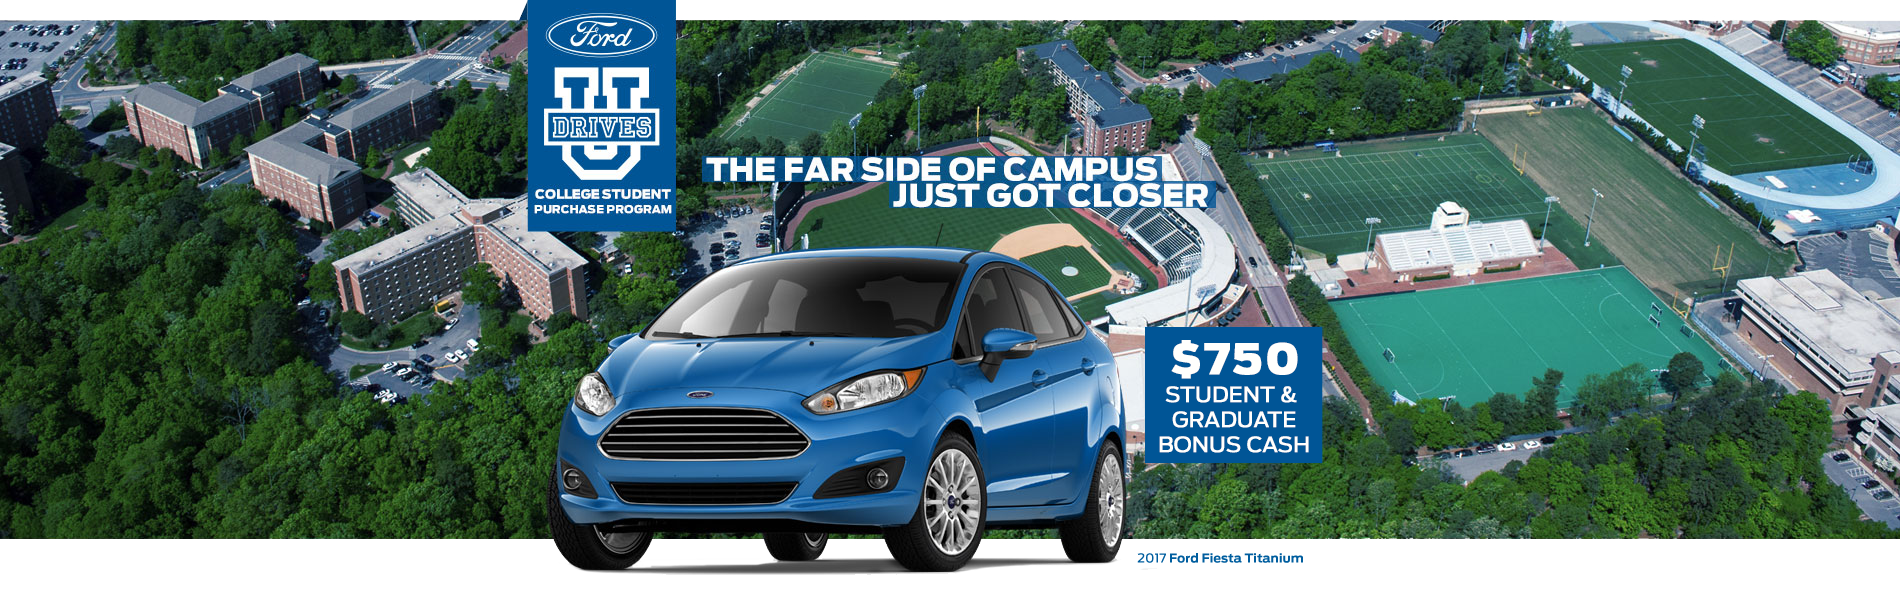 College Students Save More in a Ford - Limited time $750 Bonus Cash!